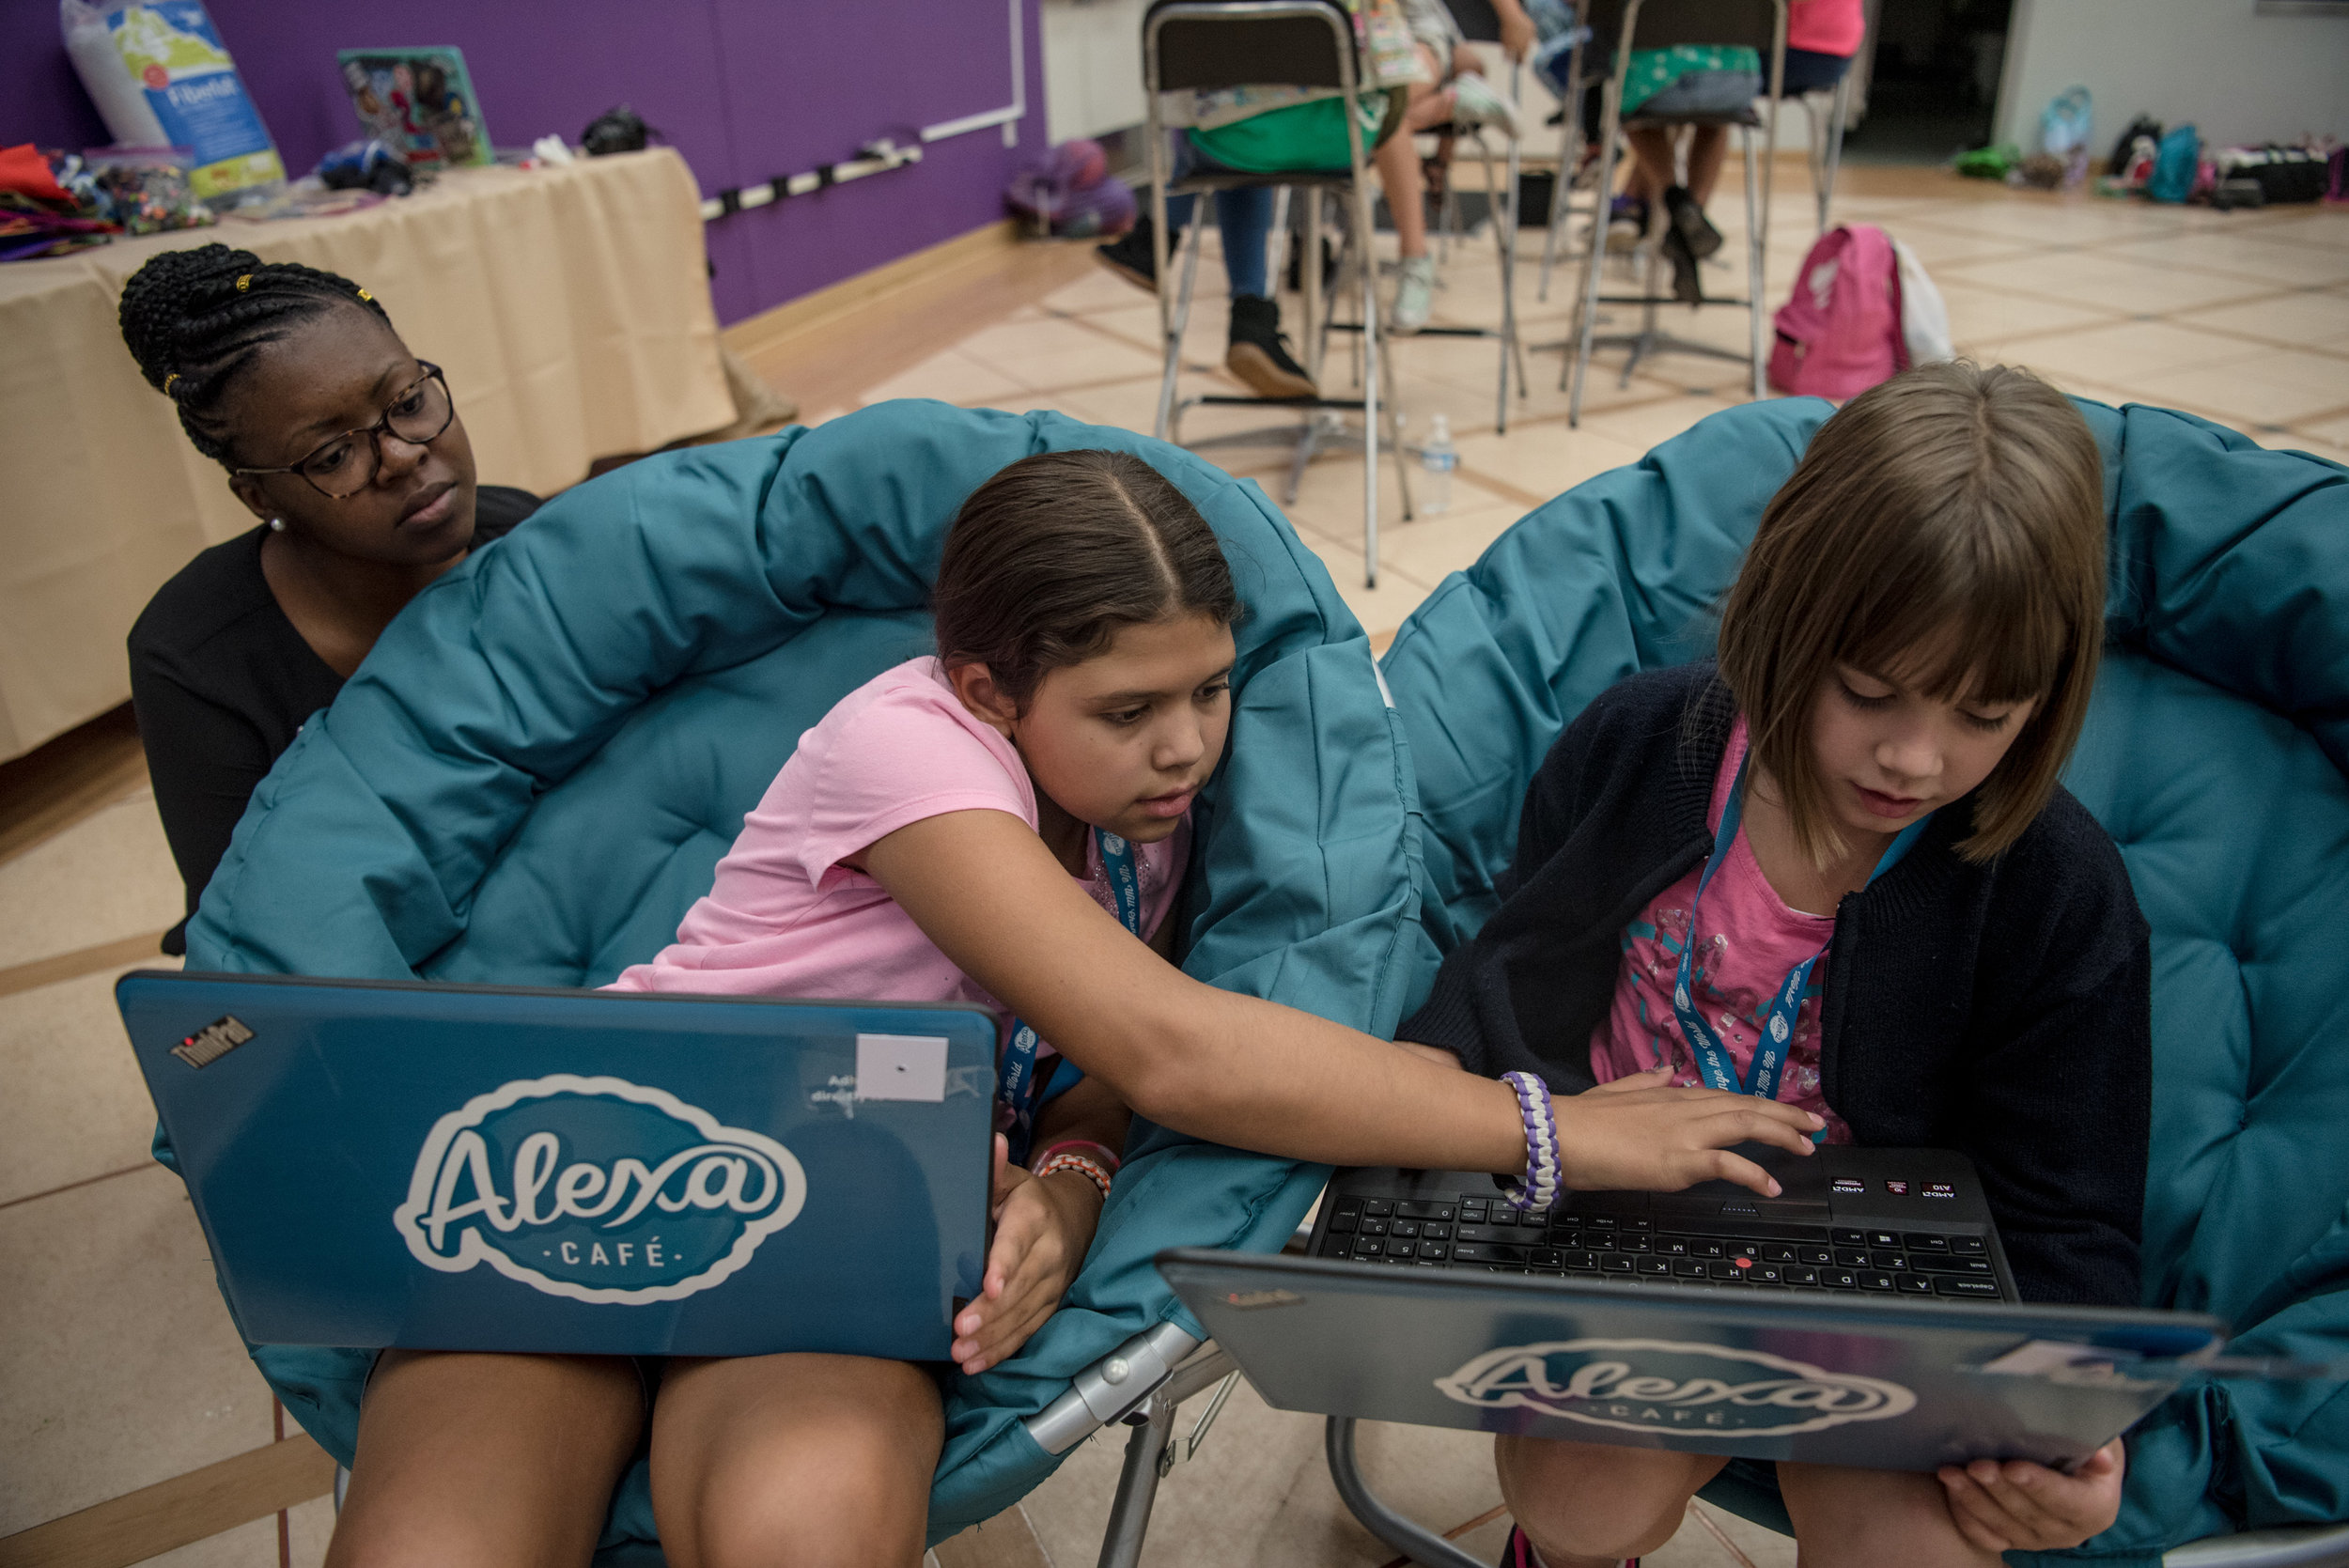 Emily, 9, and Triniti, 9, work on video game development with STEAM Director of Southern Nevada Britney Davis during  Alexa Café at Girl Scouts of Southern Nevada on Tuesday, Aug. 8, 2017, in Las Vegas. Morgan Lieberman Las Vegas Review-Journal